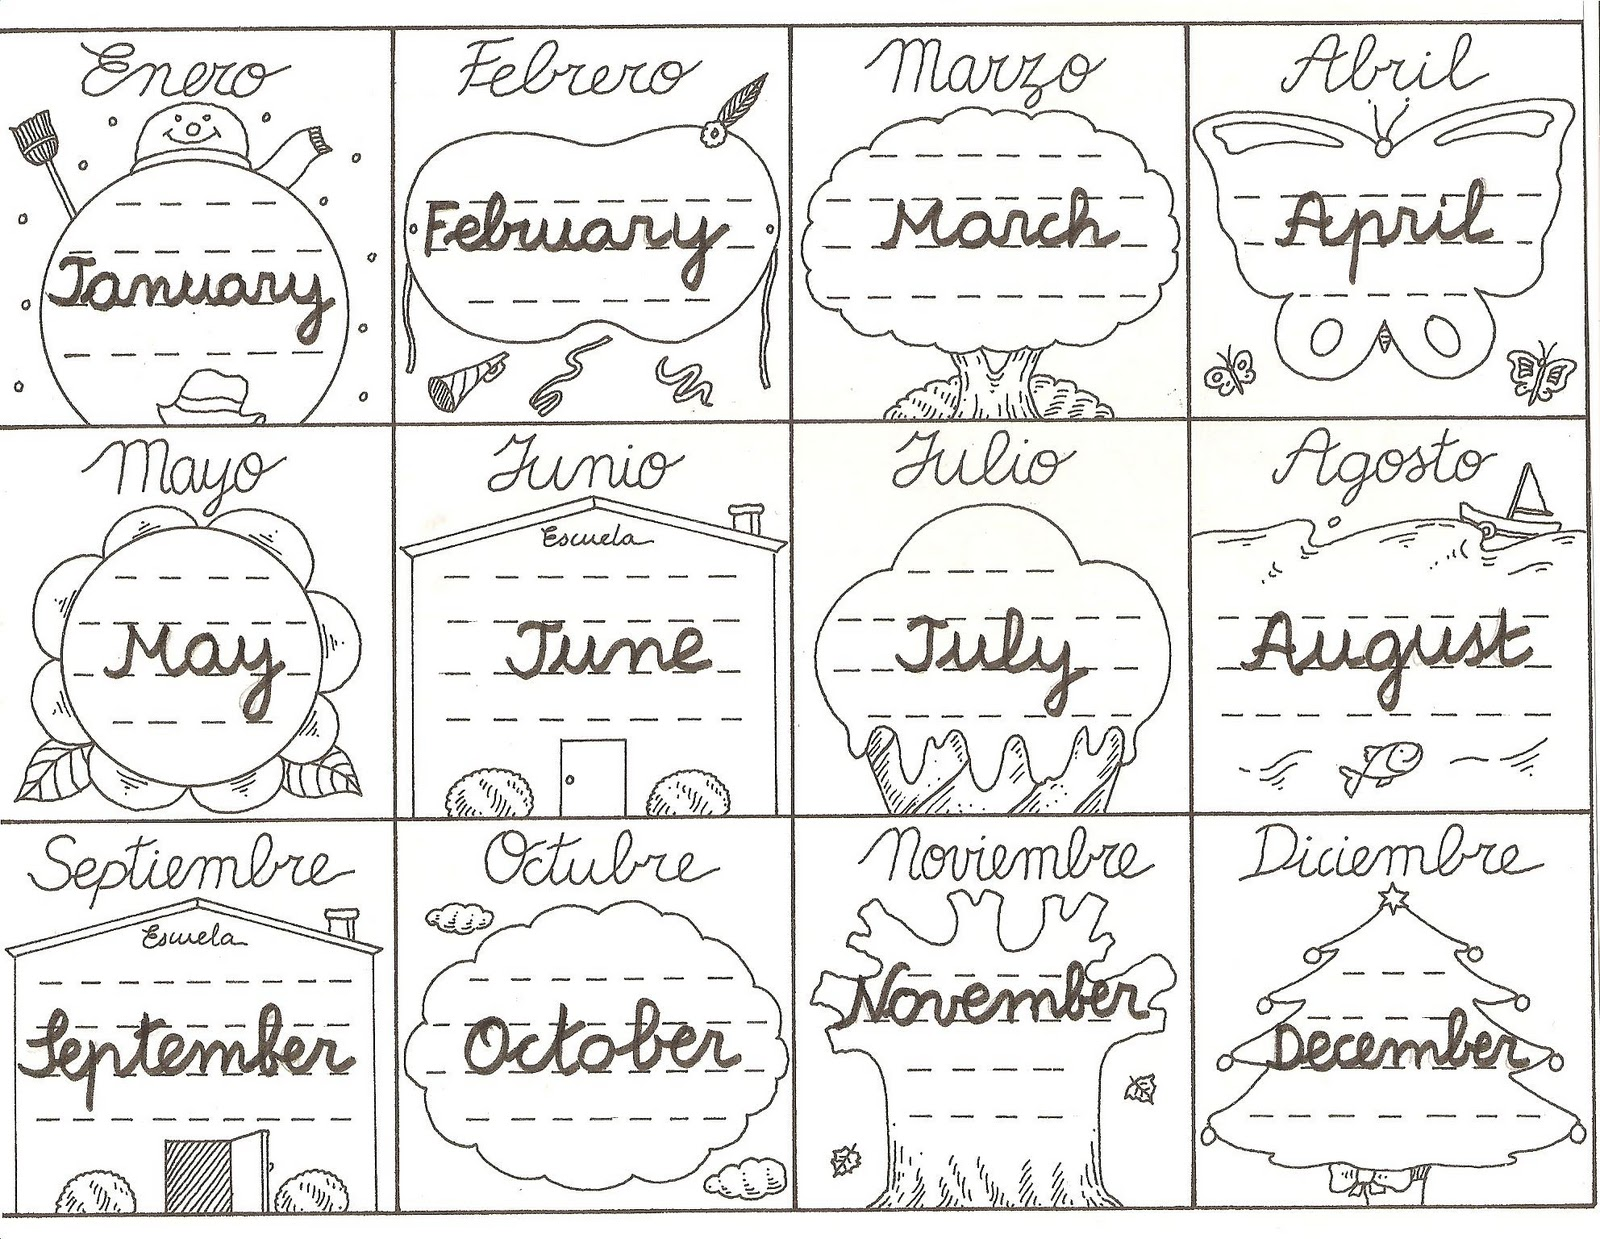 BILINGUAL AL-YUSSANA: BASIC ENGLISH: MONTHS OF THE YEAR